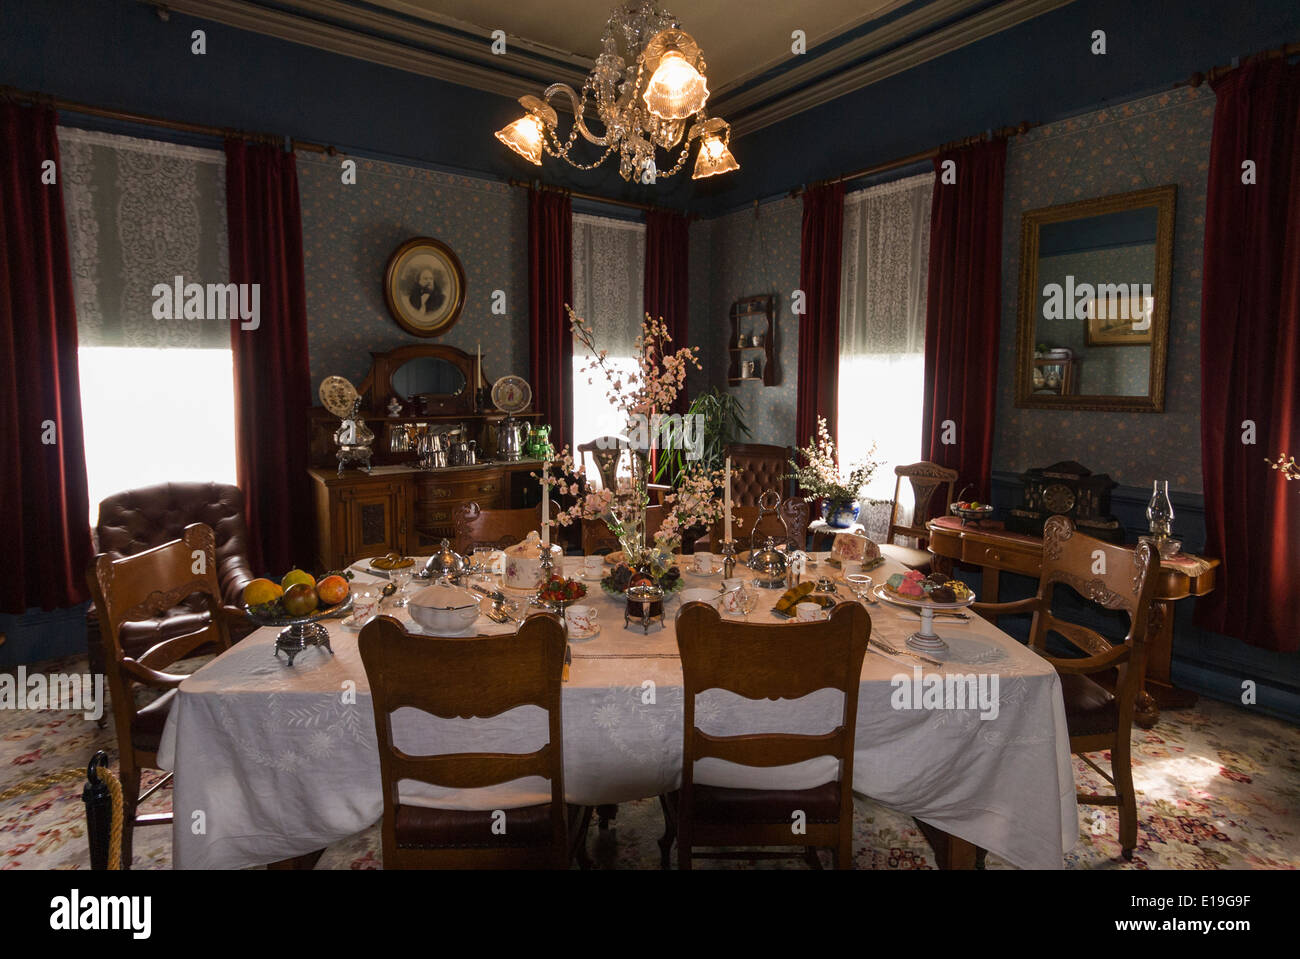 Elk203 1037 Canada, British Columbia, New Westminster, Irving House, 1865,  Dining Room